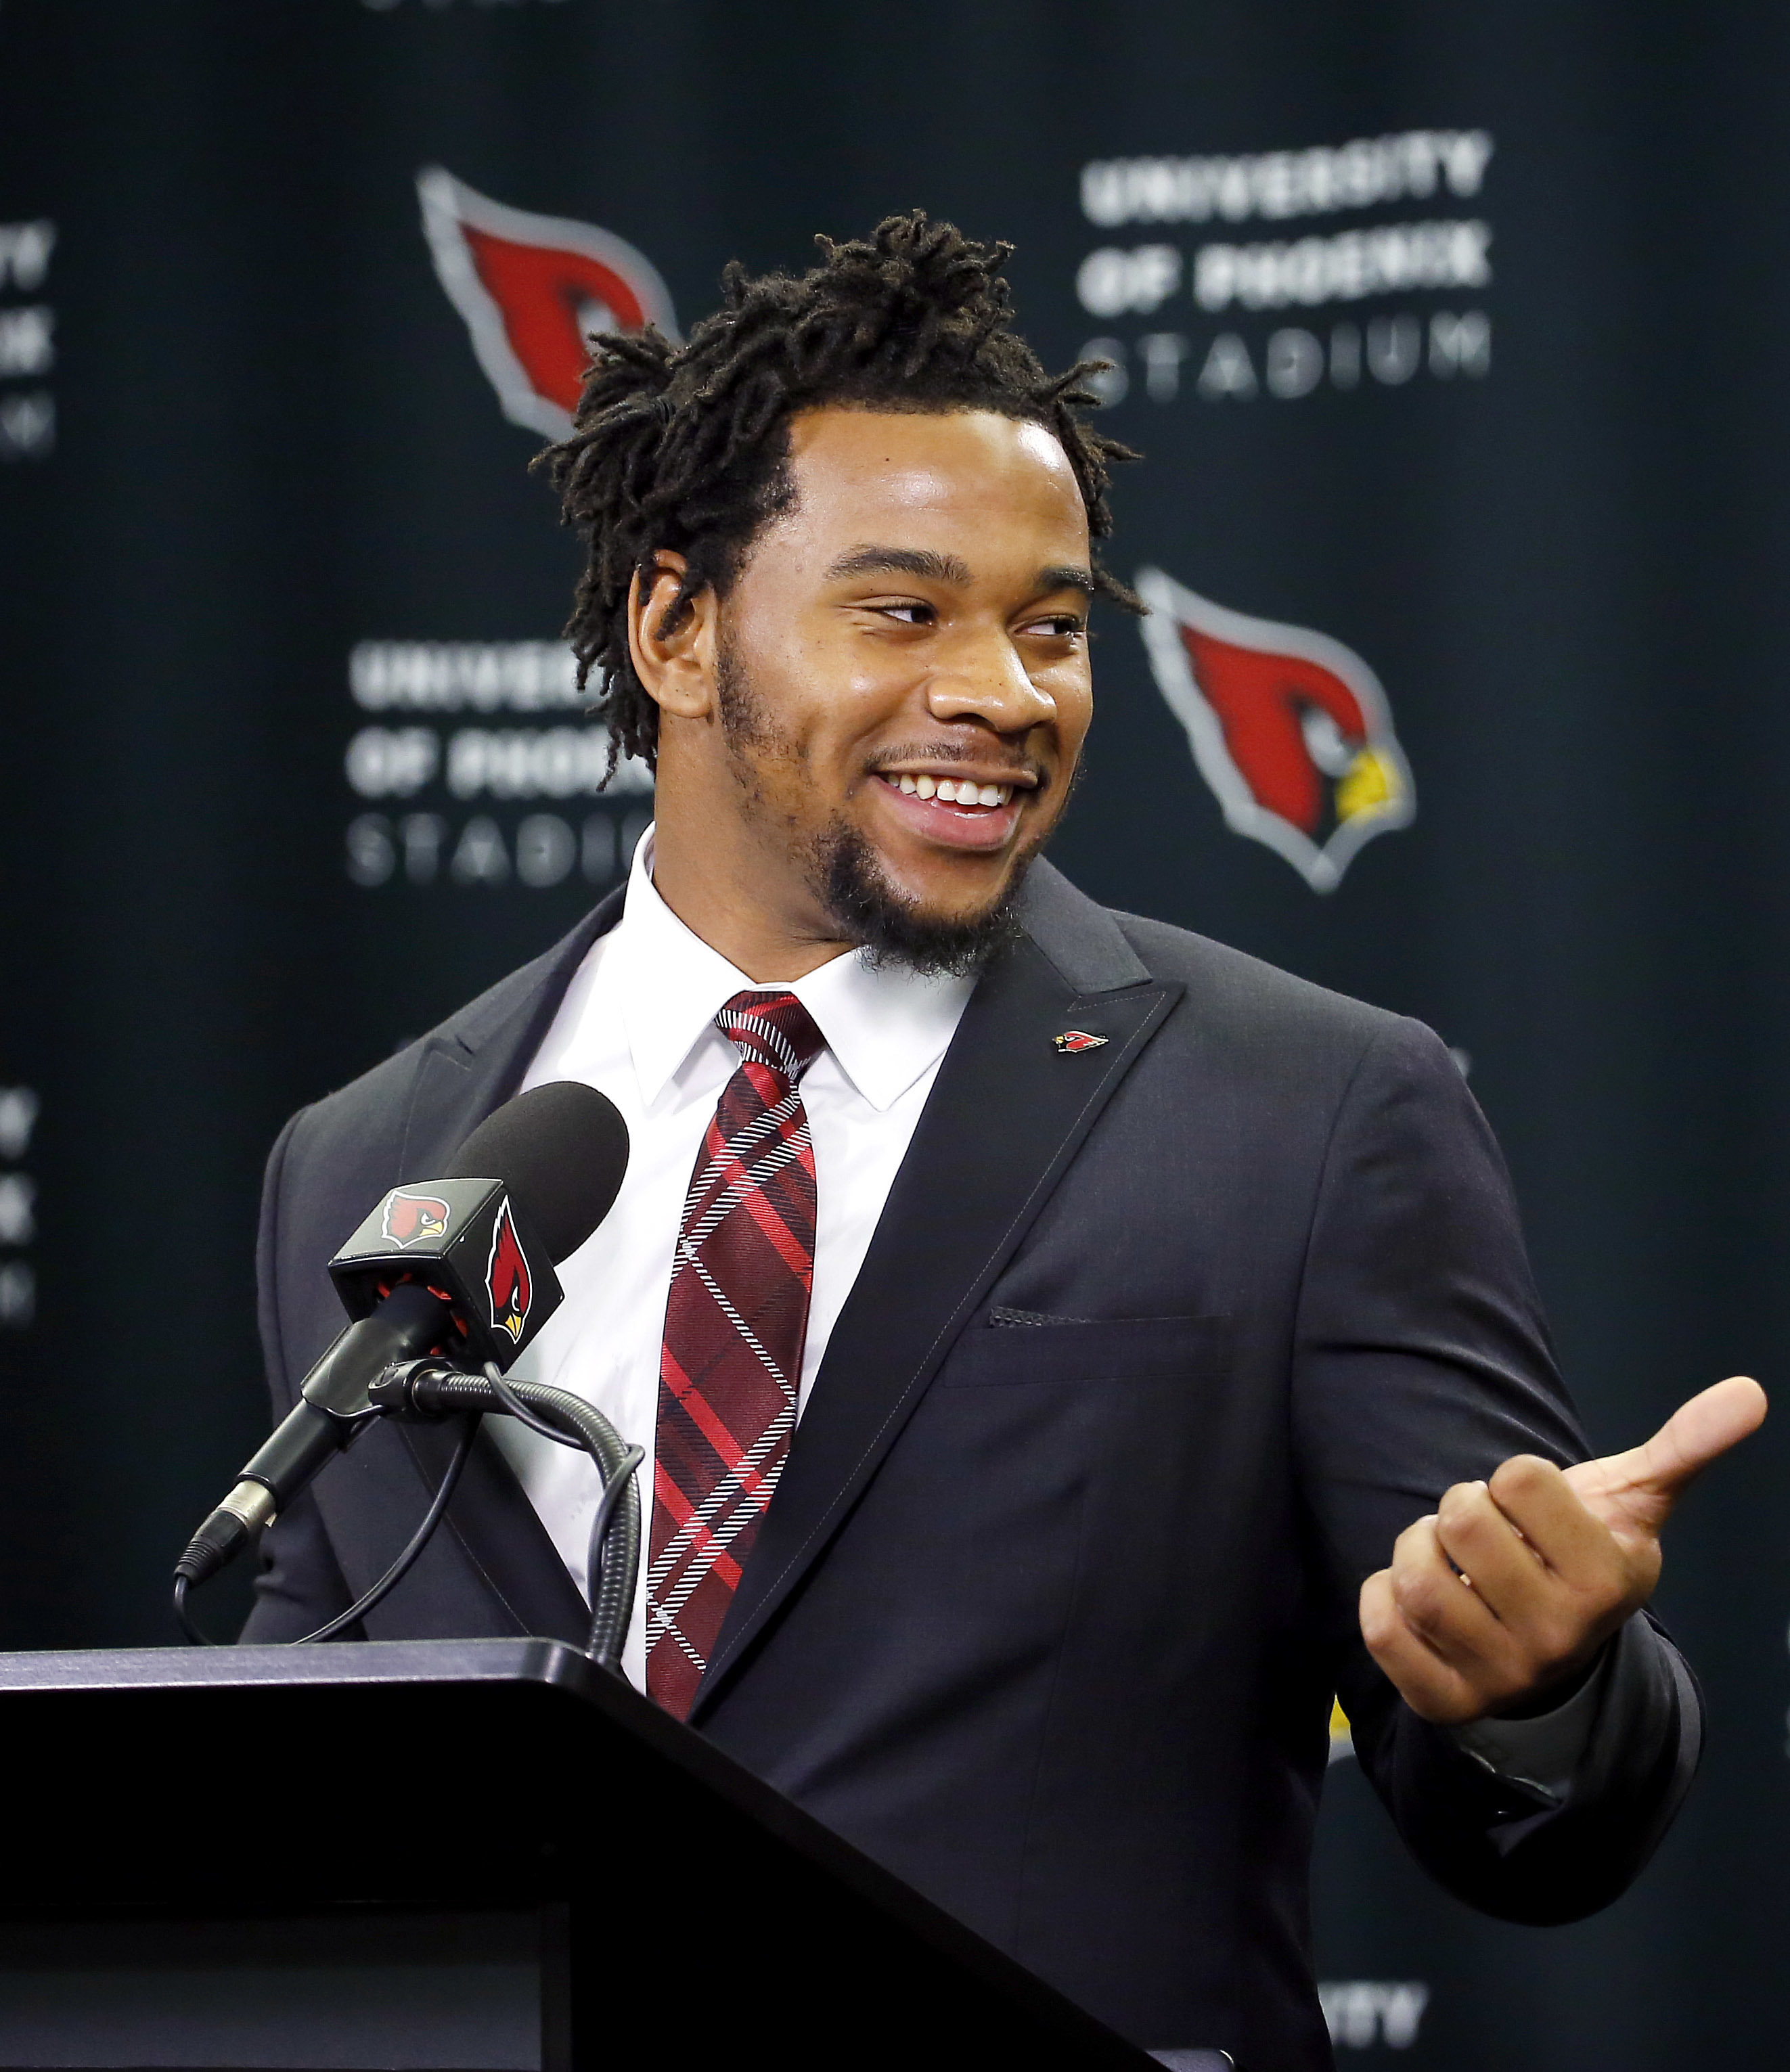 Arizona Cardinals' first-round draft pick Robert Nkemdiche points to head coach Bruce Arians after being introduced to the media, Friday, April 29, 2016, in Tempe, Ariz. Nkemdiche was the Cardinals' first round, 29th overall, pick in the NFL football draf